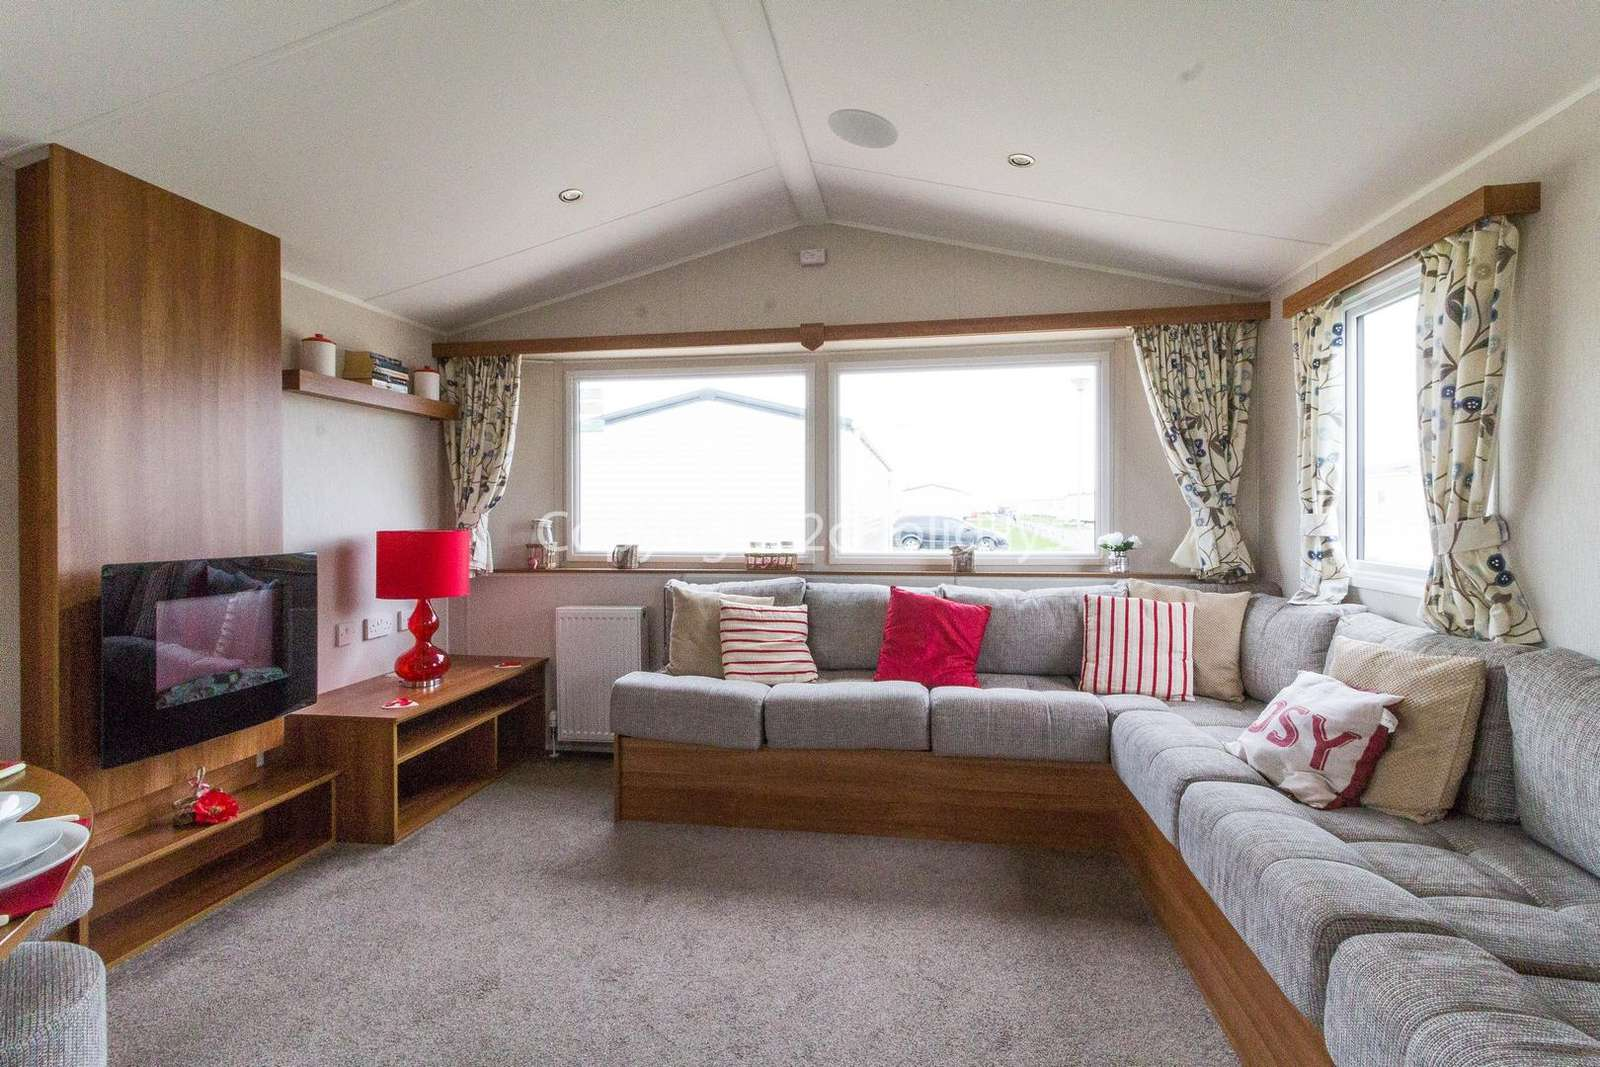 Superb 8 berth mobile home, pet friendly accommodation!